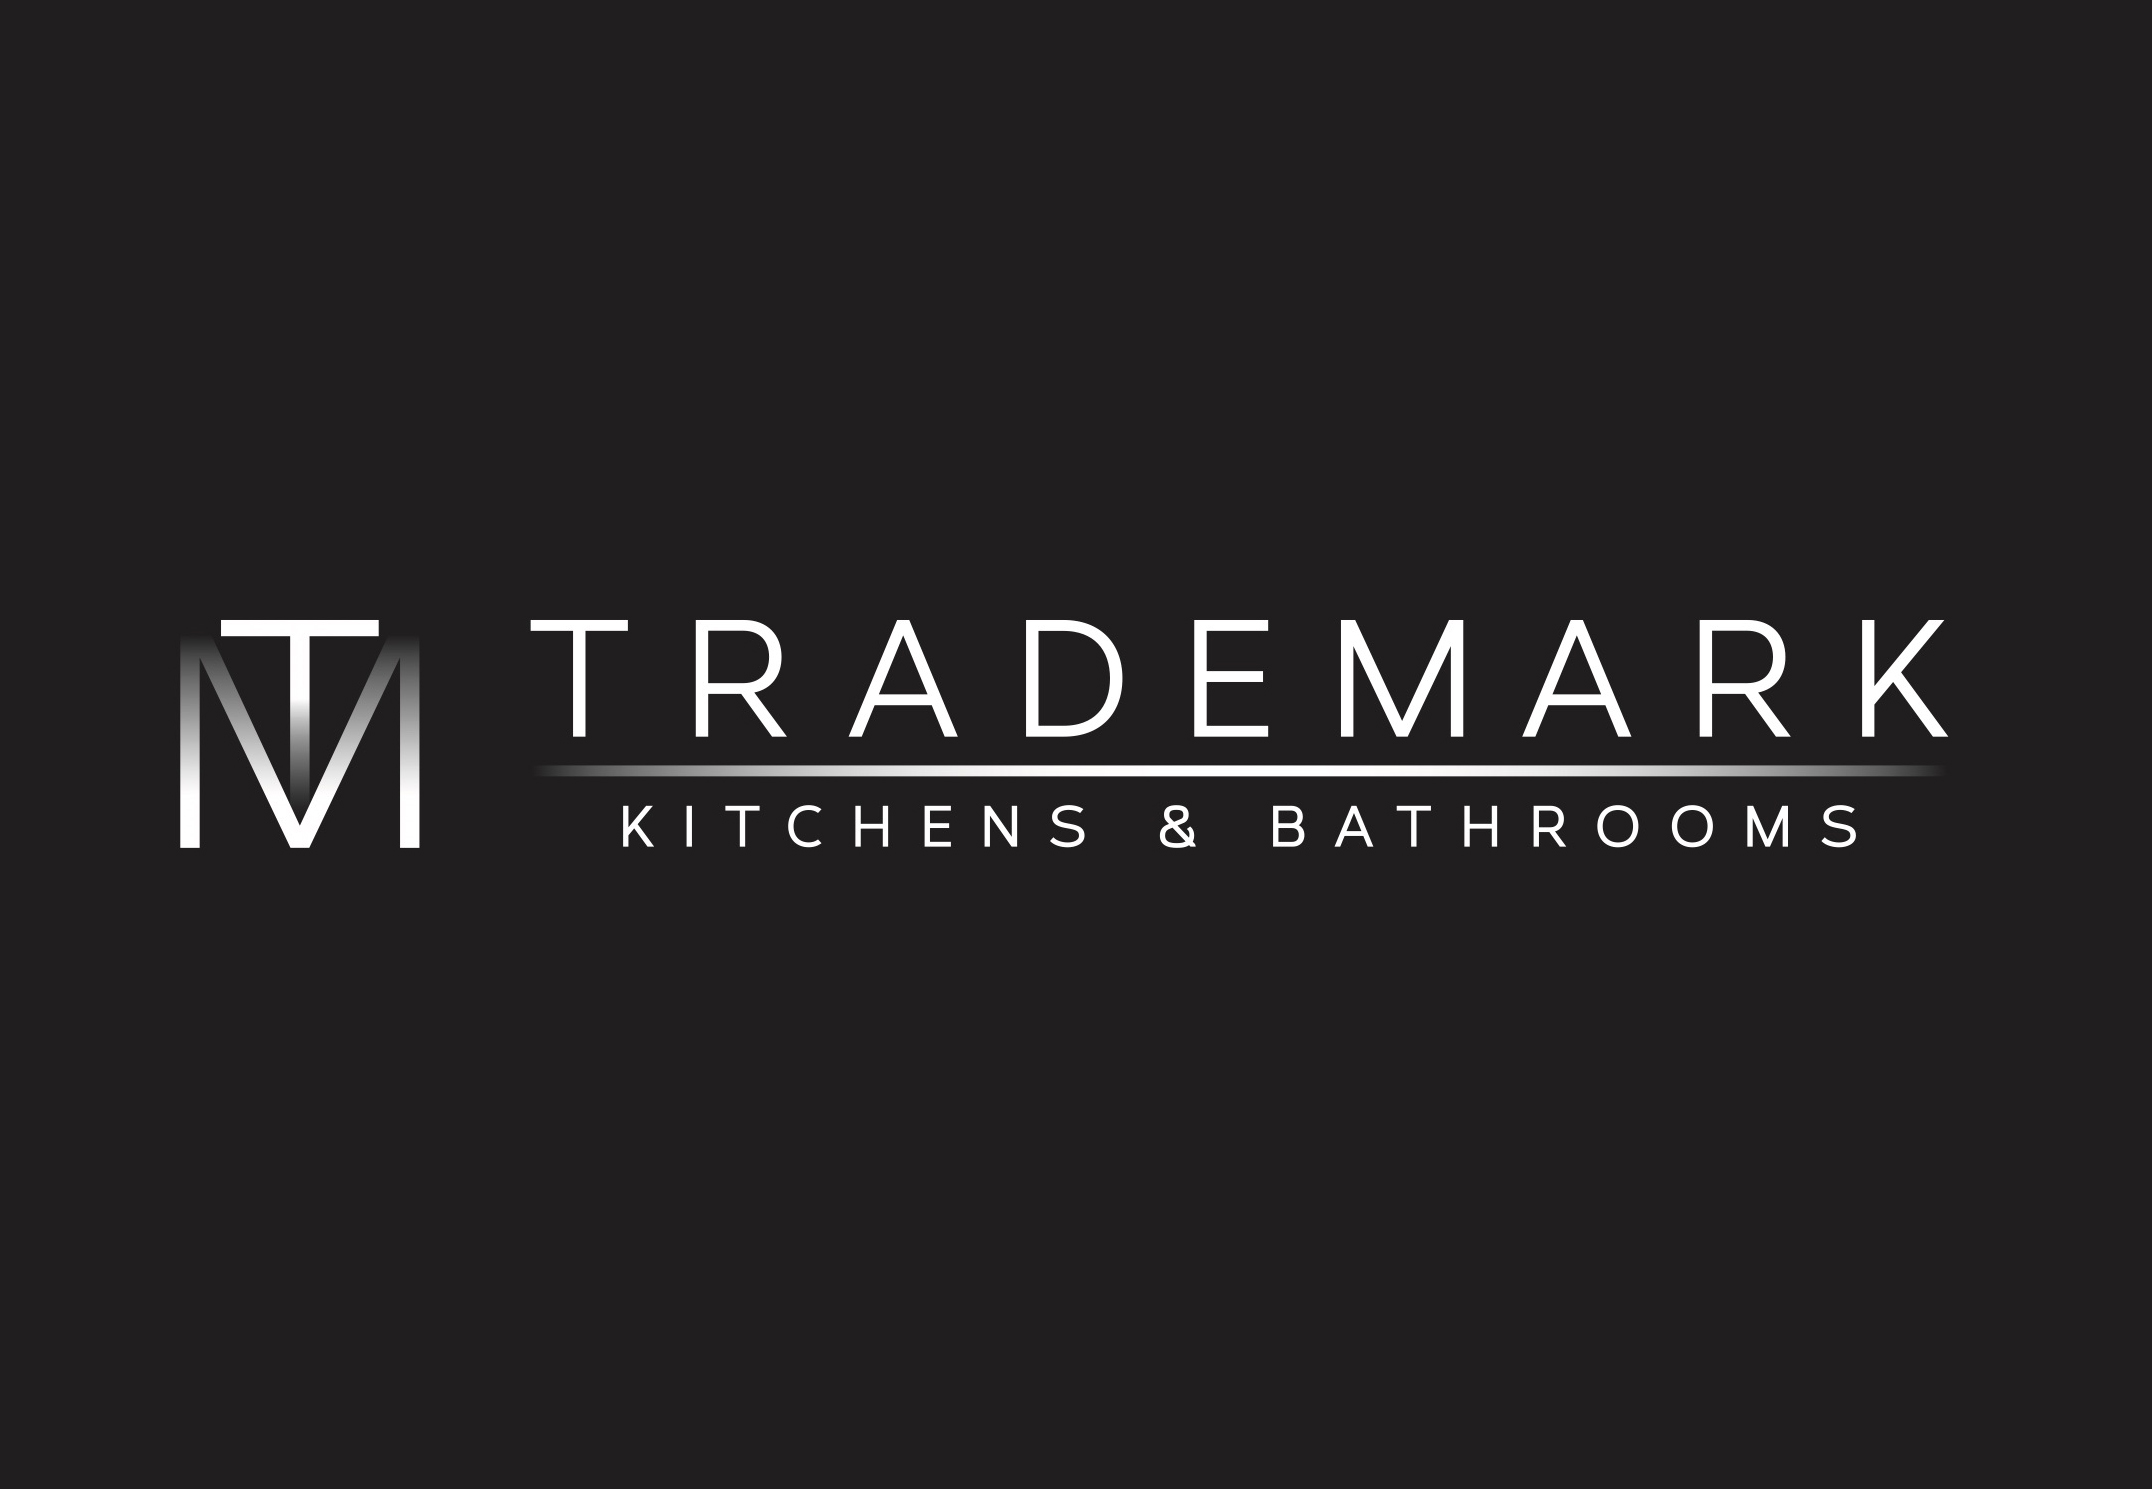 Trademark Kitchens & Bathrooms